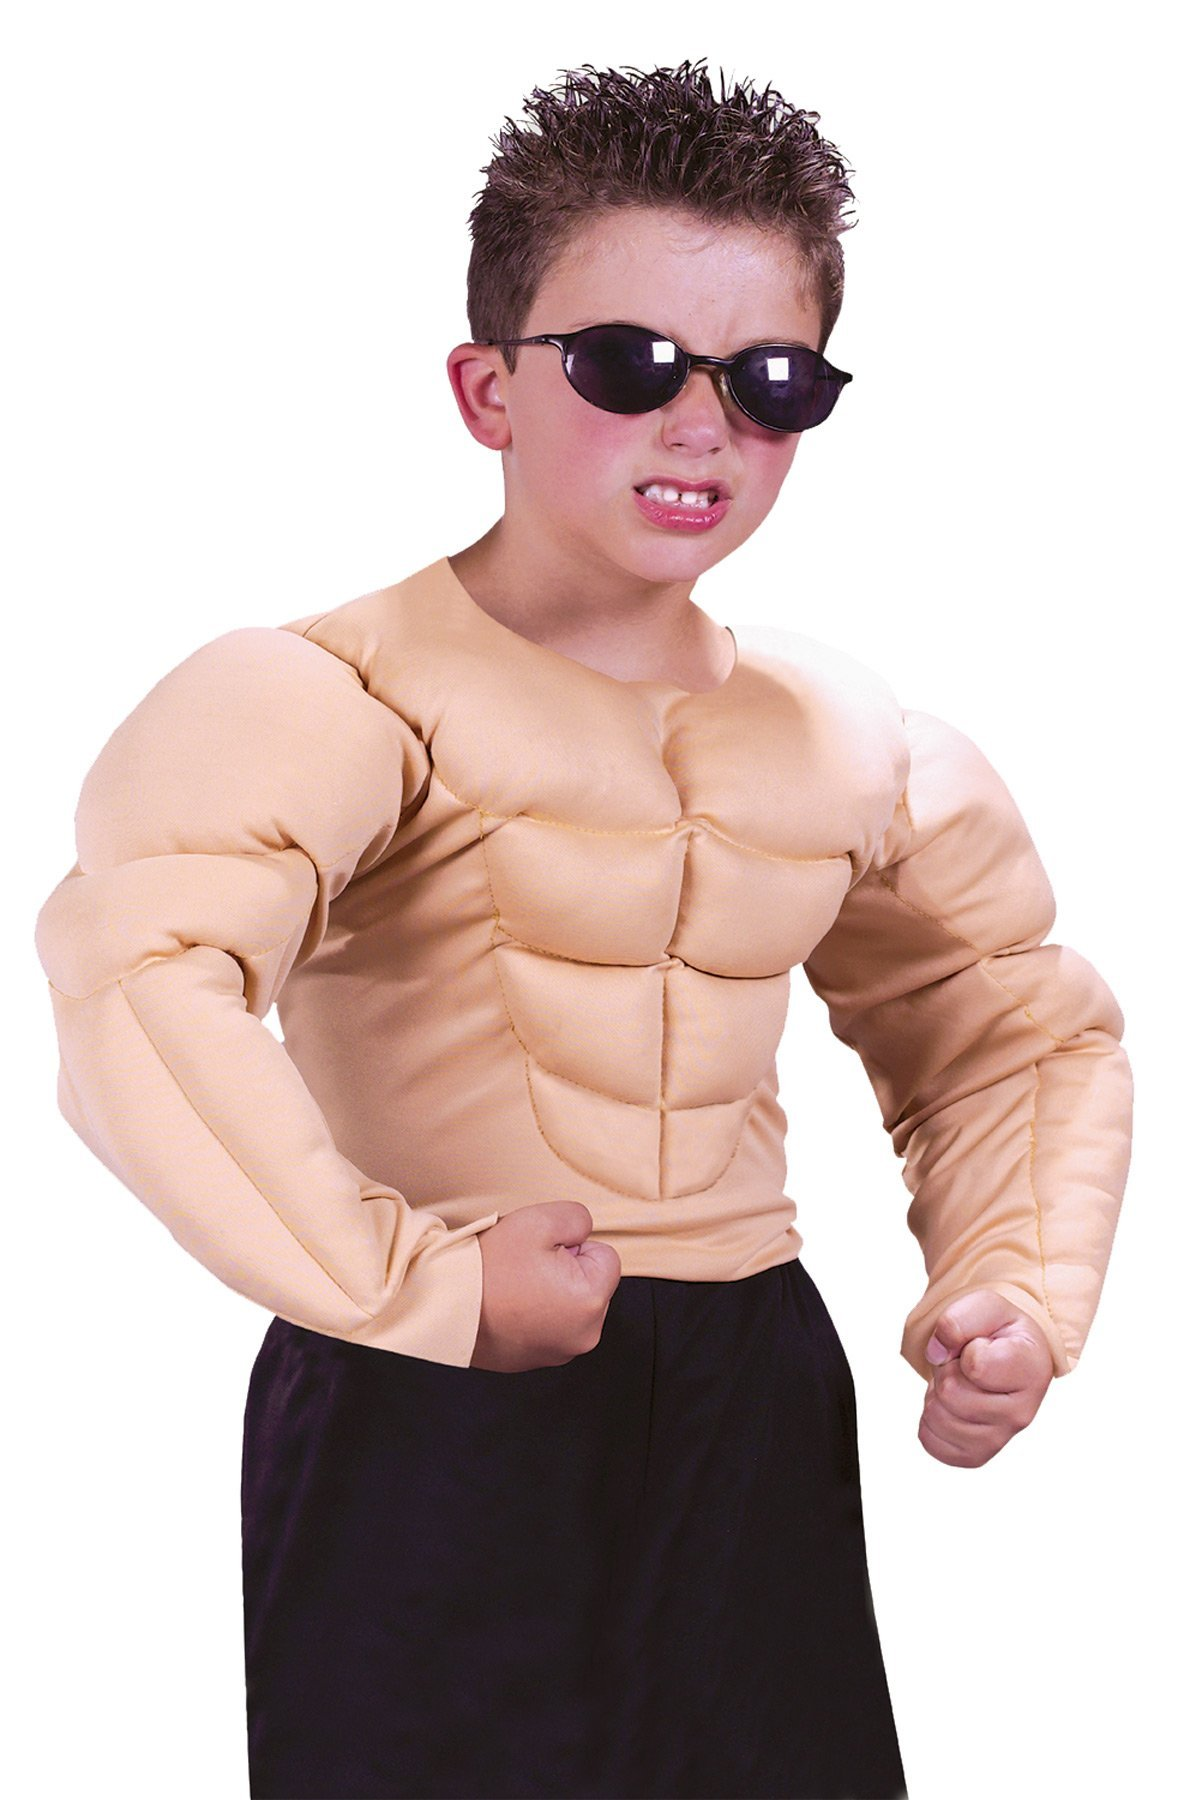 GTH Boy's Muscle Shirt Kids Child Fancy Dress Party Halloween Costume, M (8-10) by FunWorld (Image #1)